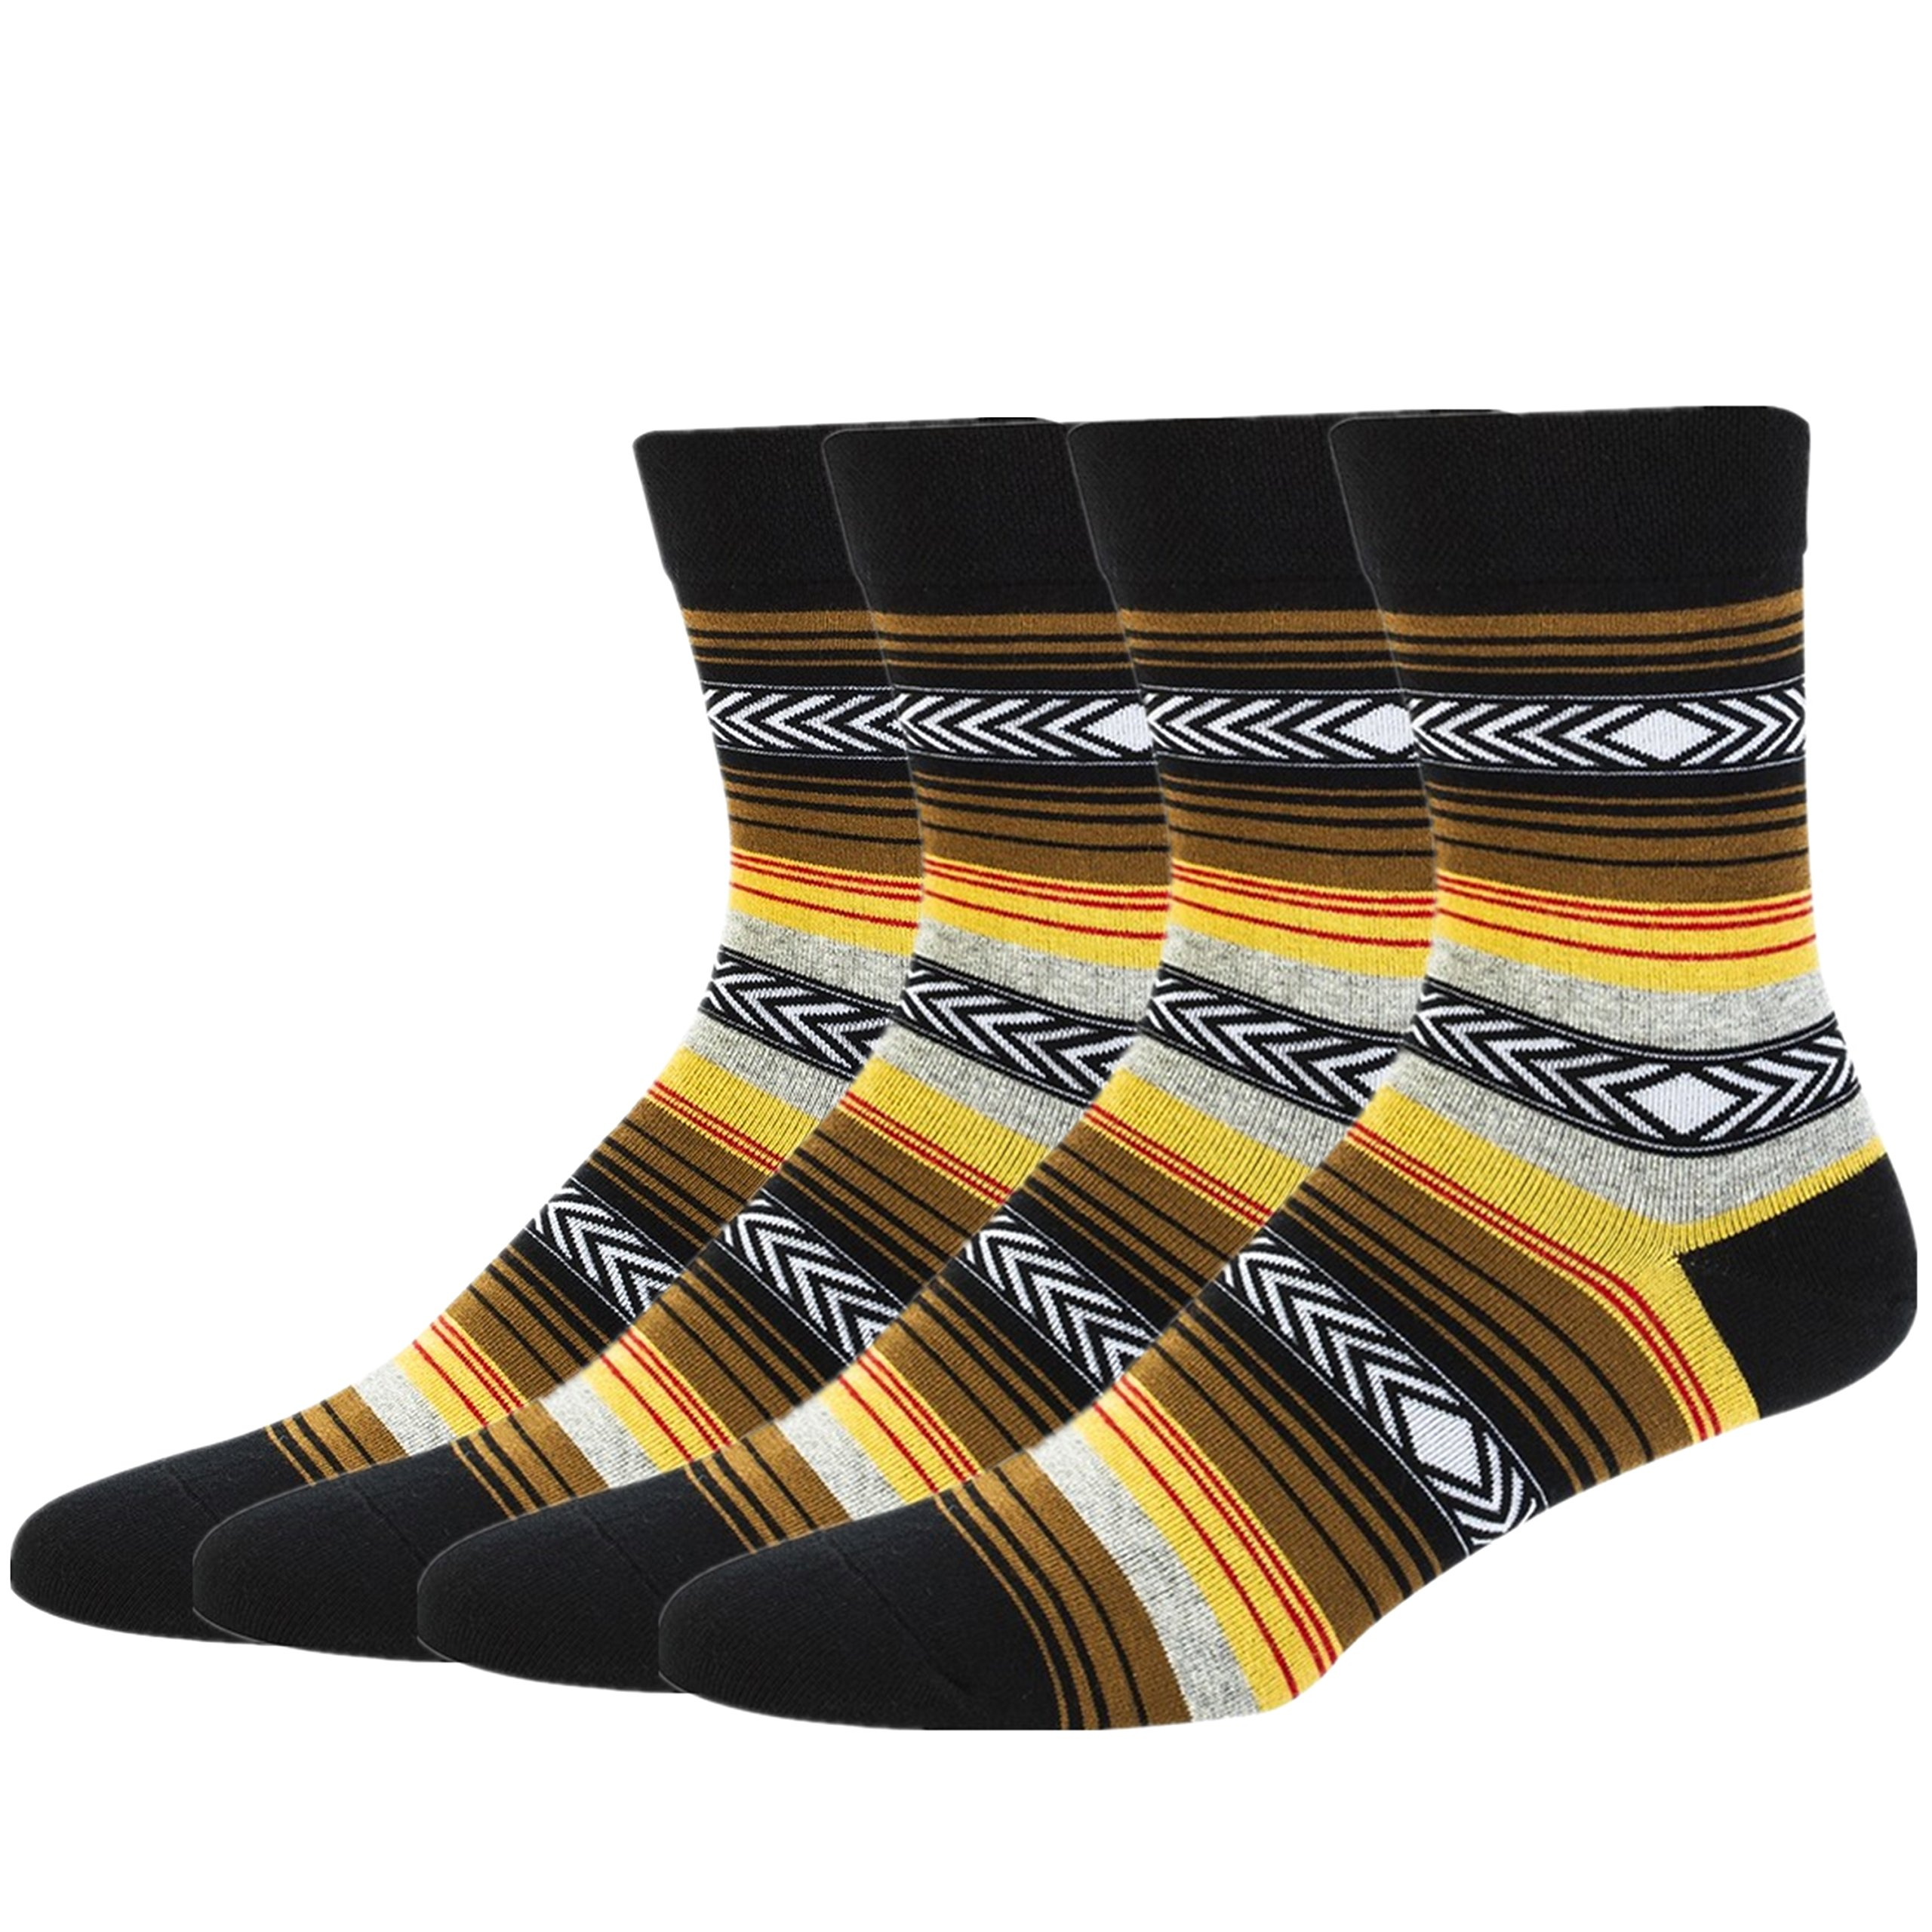 Women's Dress Socks Colorful Warm Funny Casual Crew Vintage Style 2 Pairs Tselected (Yellow)